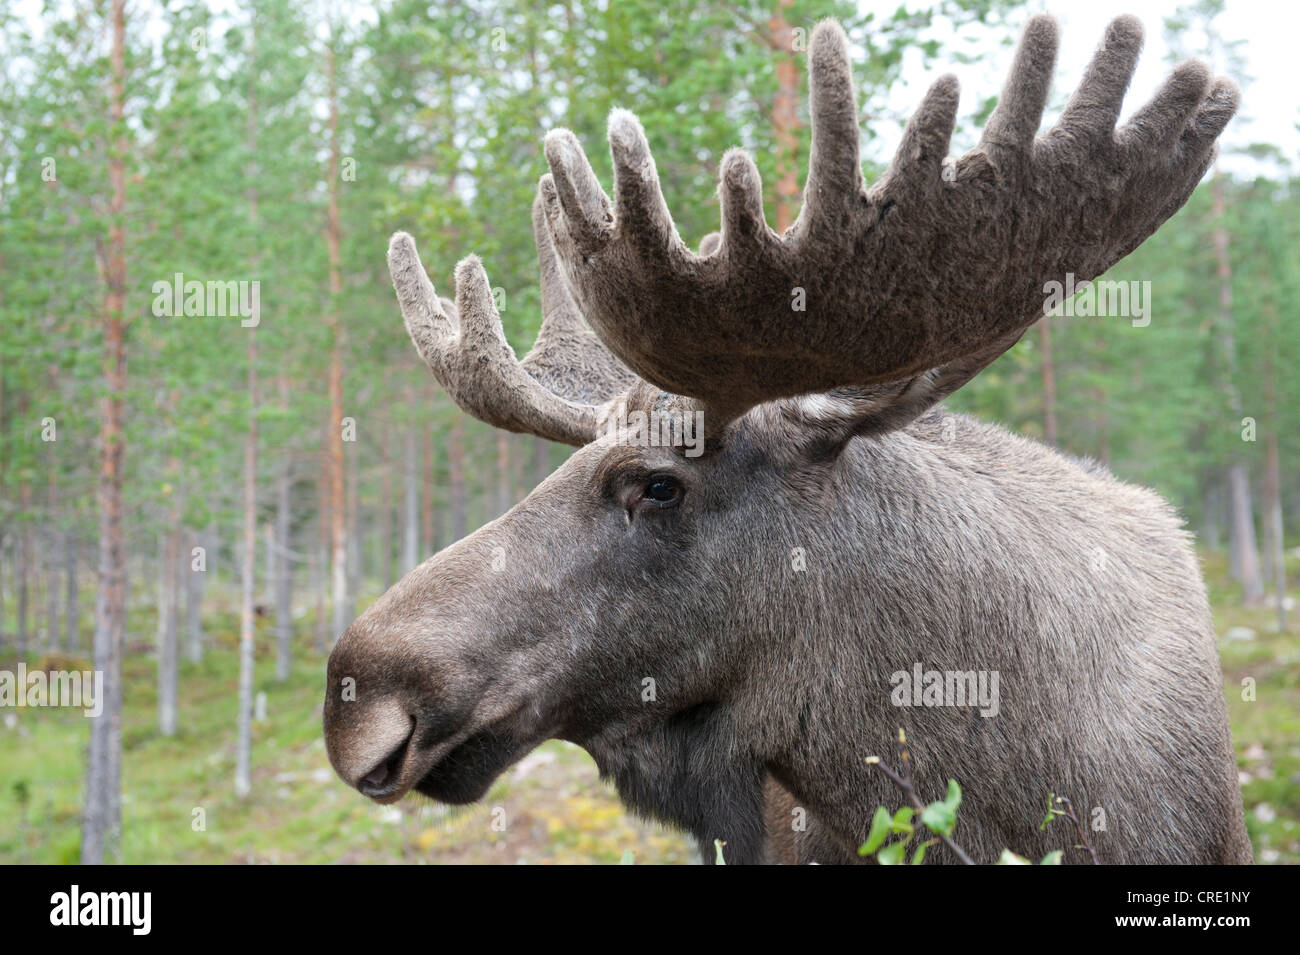 Moose (Alces alces), 7-year-old bull moose with large antlers covered in velvet, portrait, Moose Park - Stock Image